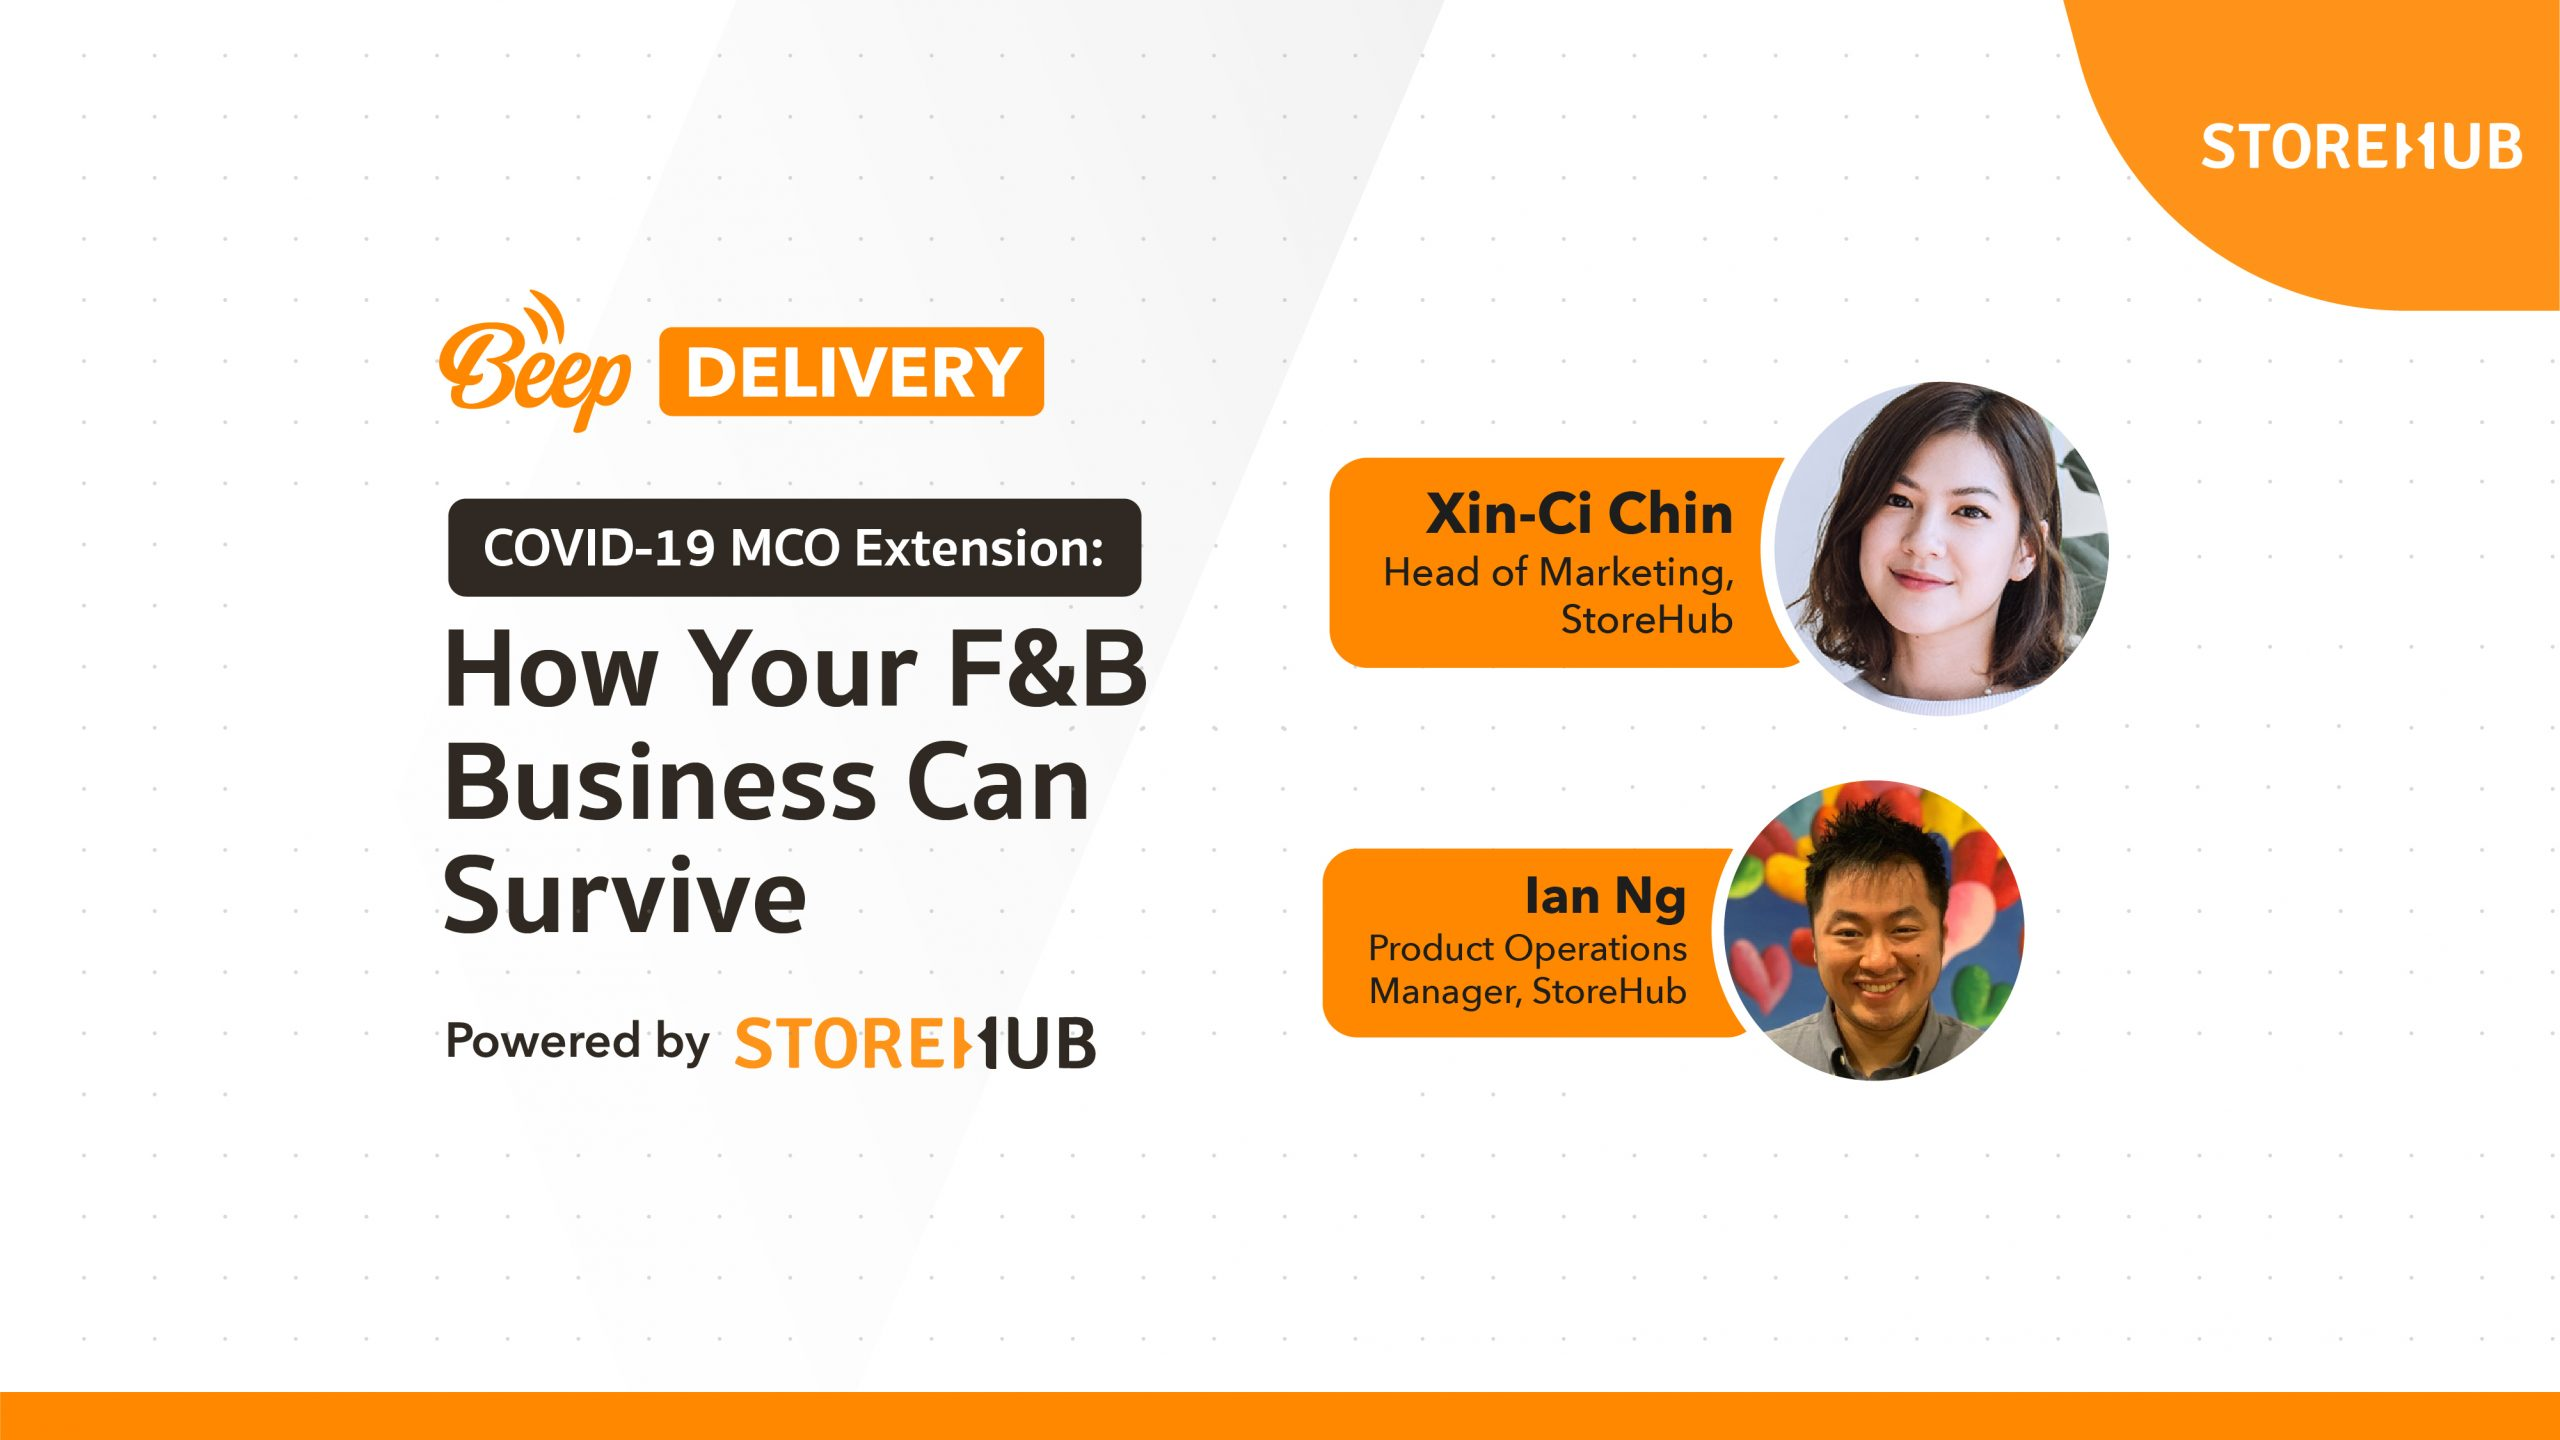 webinar video COVID-19 extended MCO Movement Control Order how F&B business can survive Beep Delivery StoreHub thumbnail